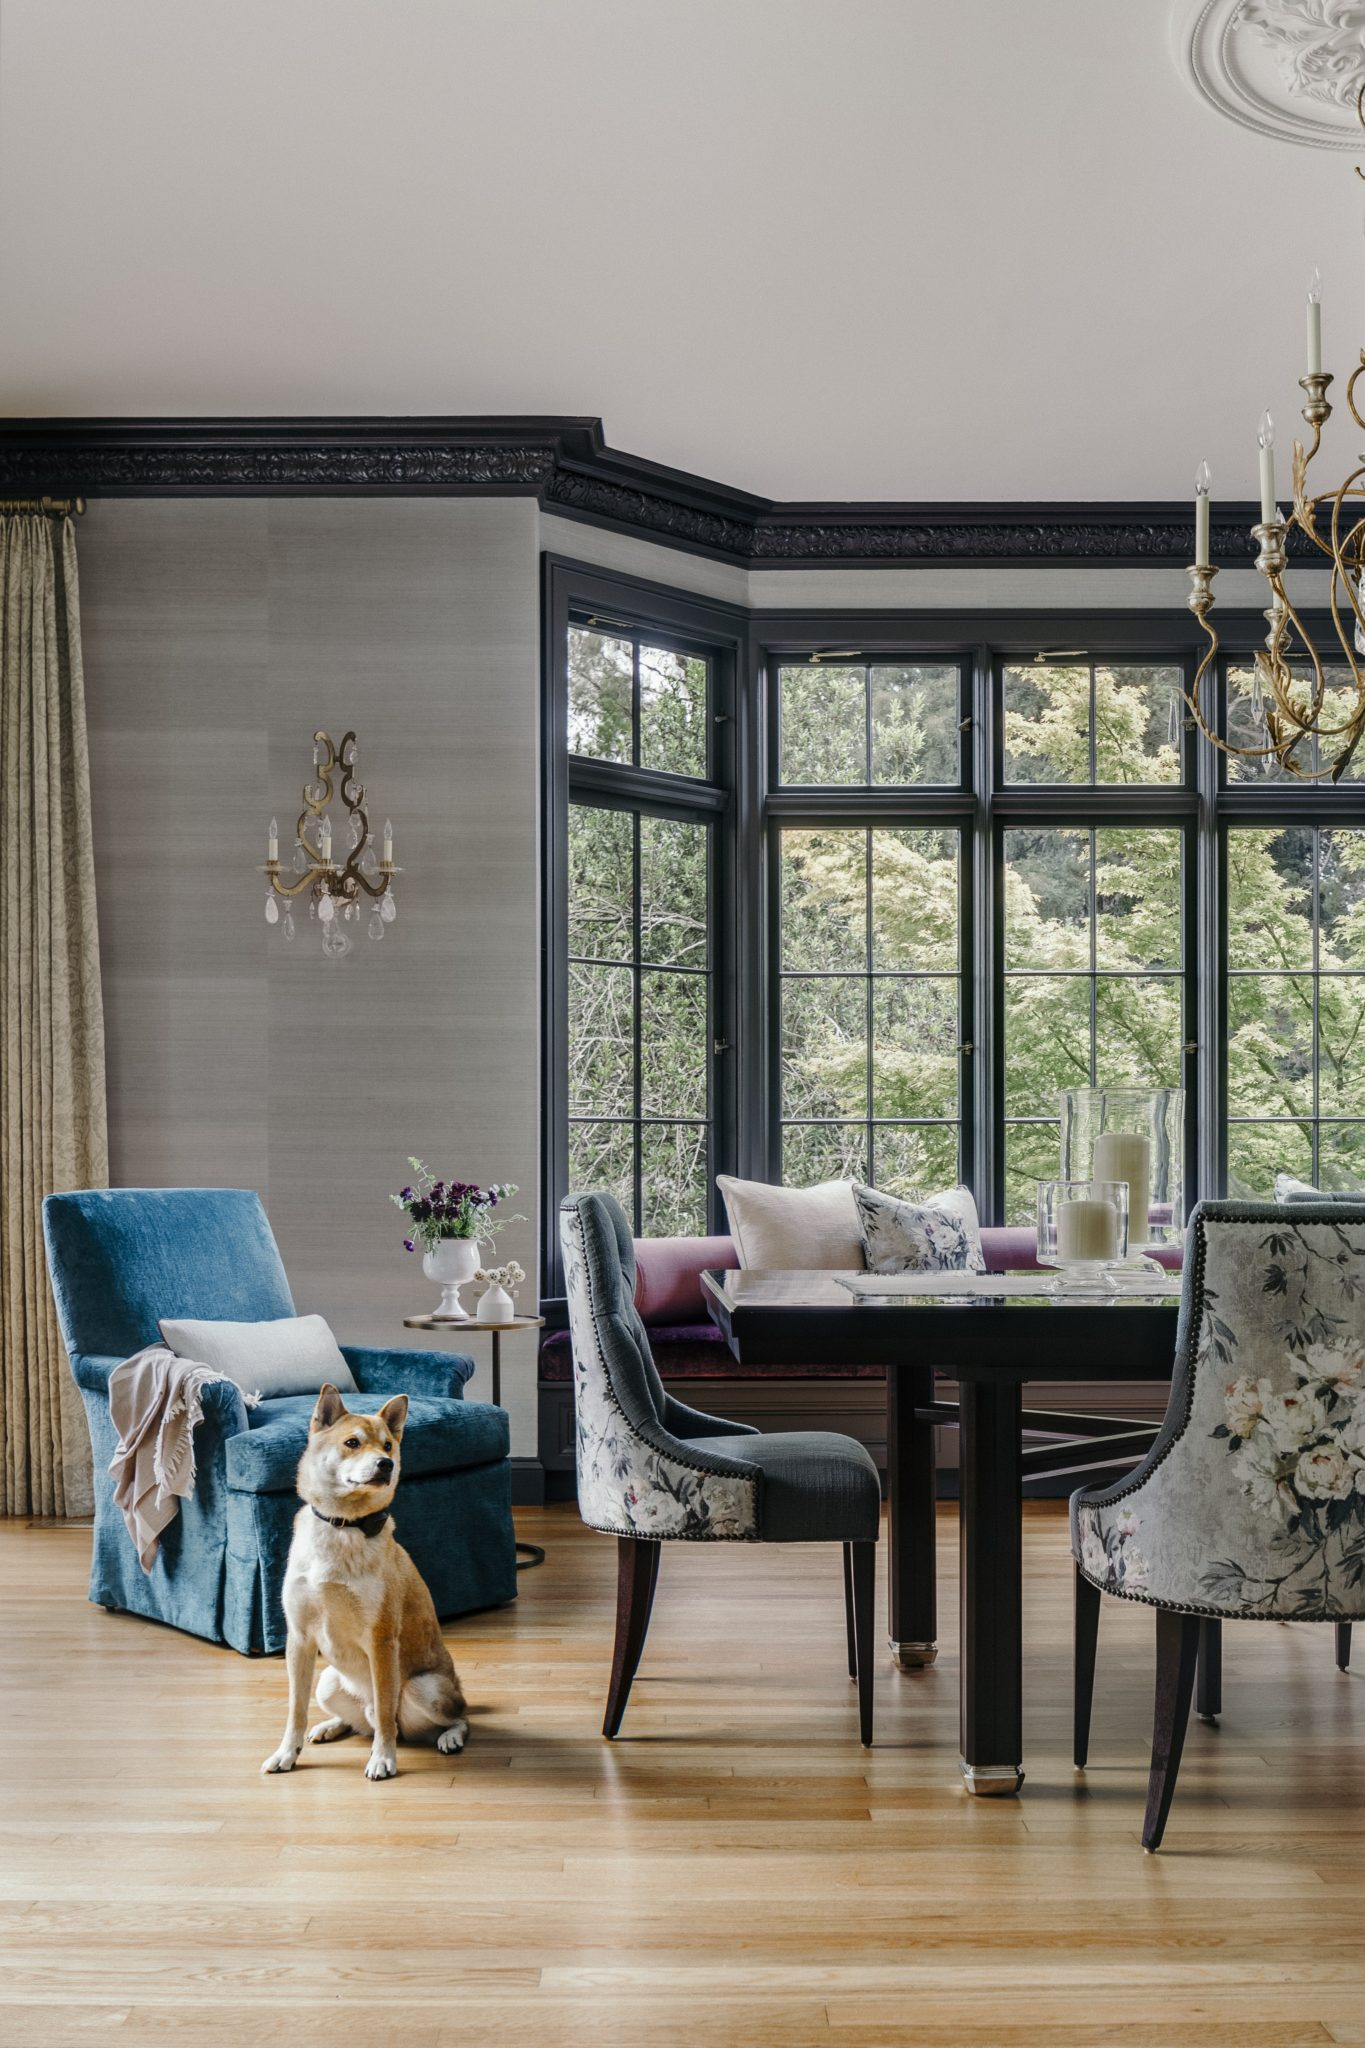 In a cordovan finish, the table is from Century Furniture. Upholstered in fabric from Designers Guild, the dining chairs are from Baker Furniture. The iron wall sconceis from Ralph Lauren Home.